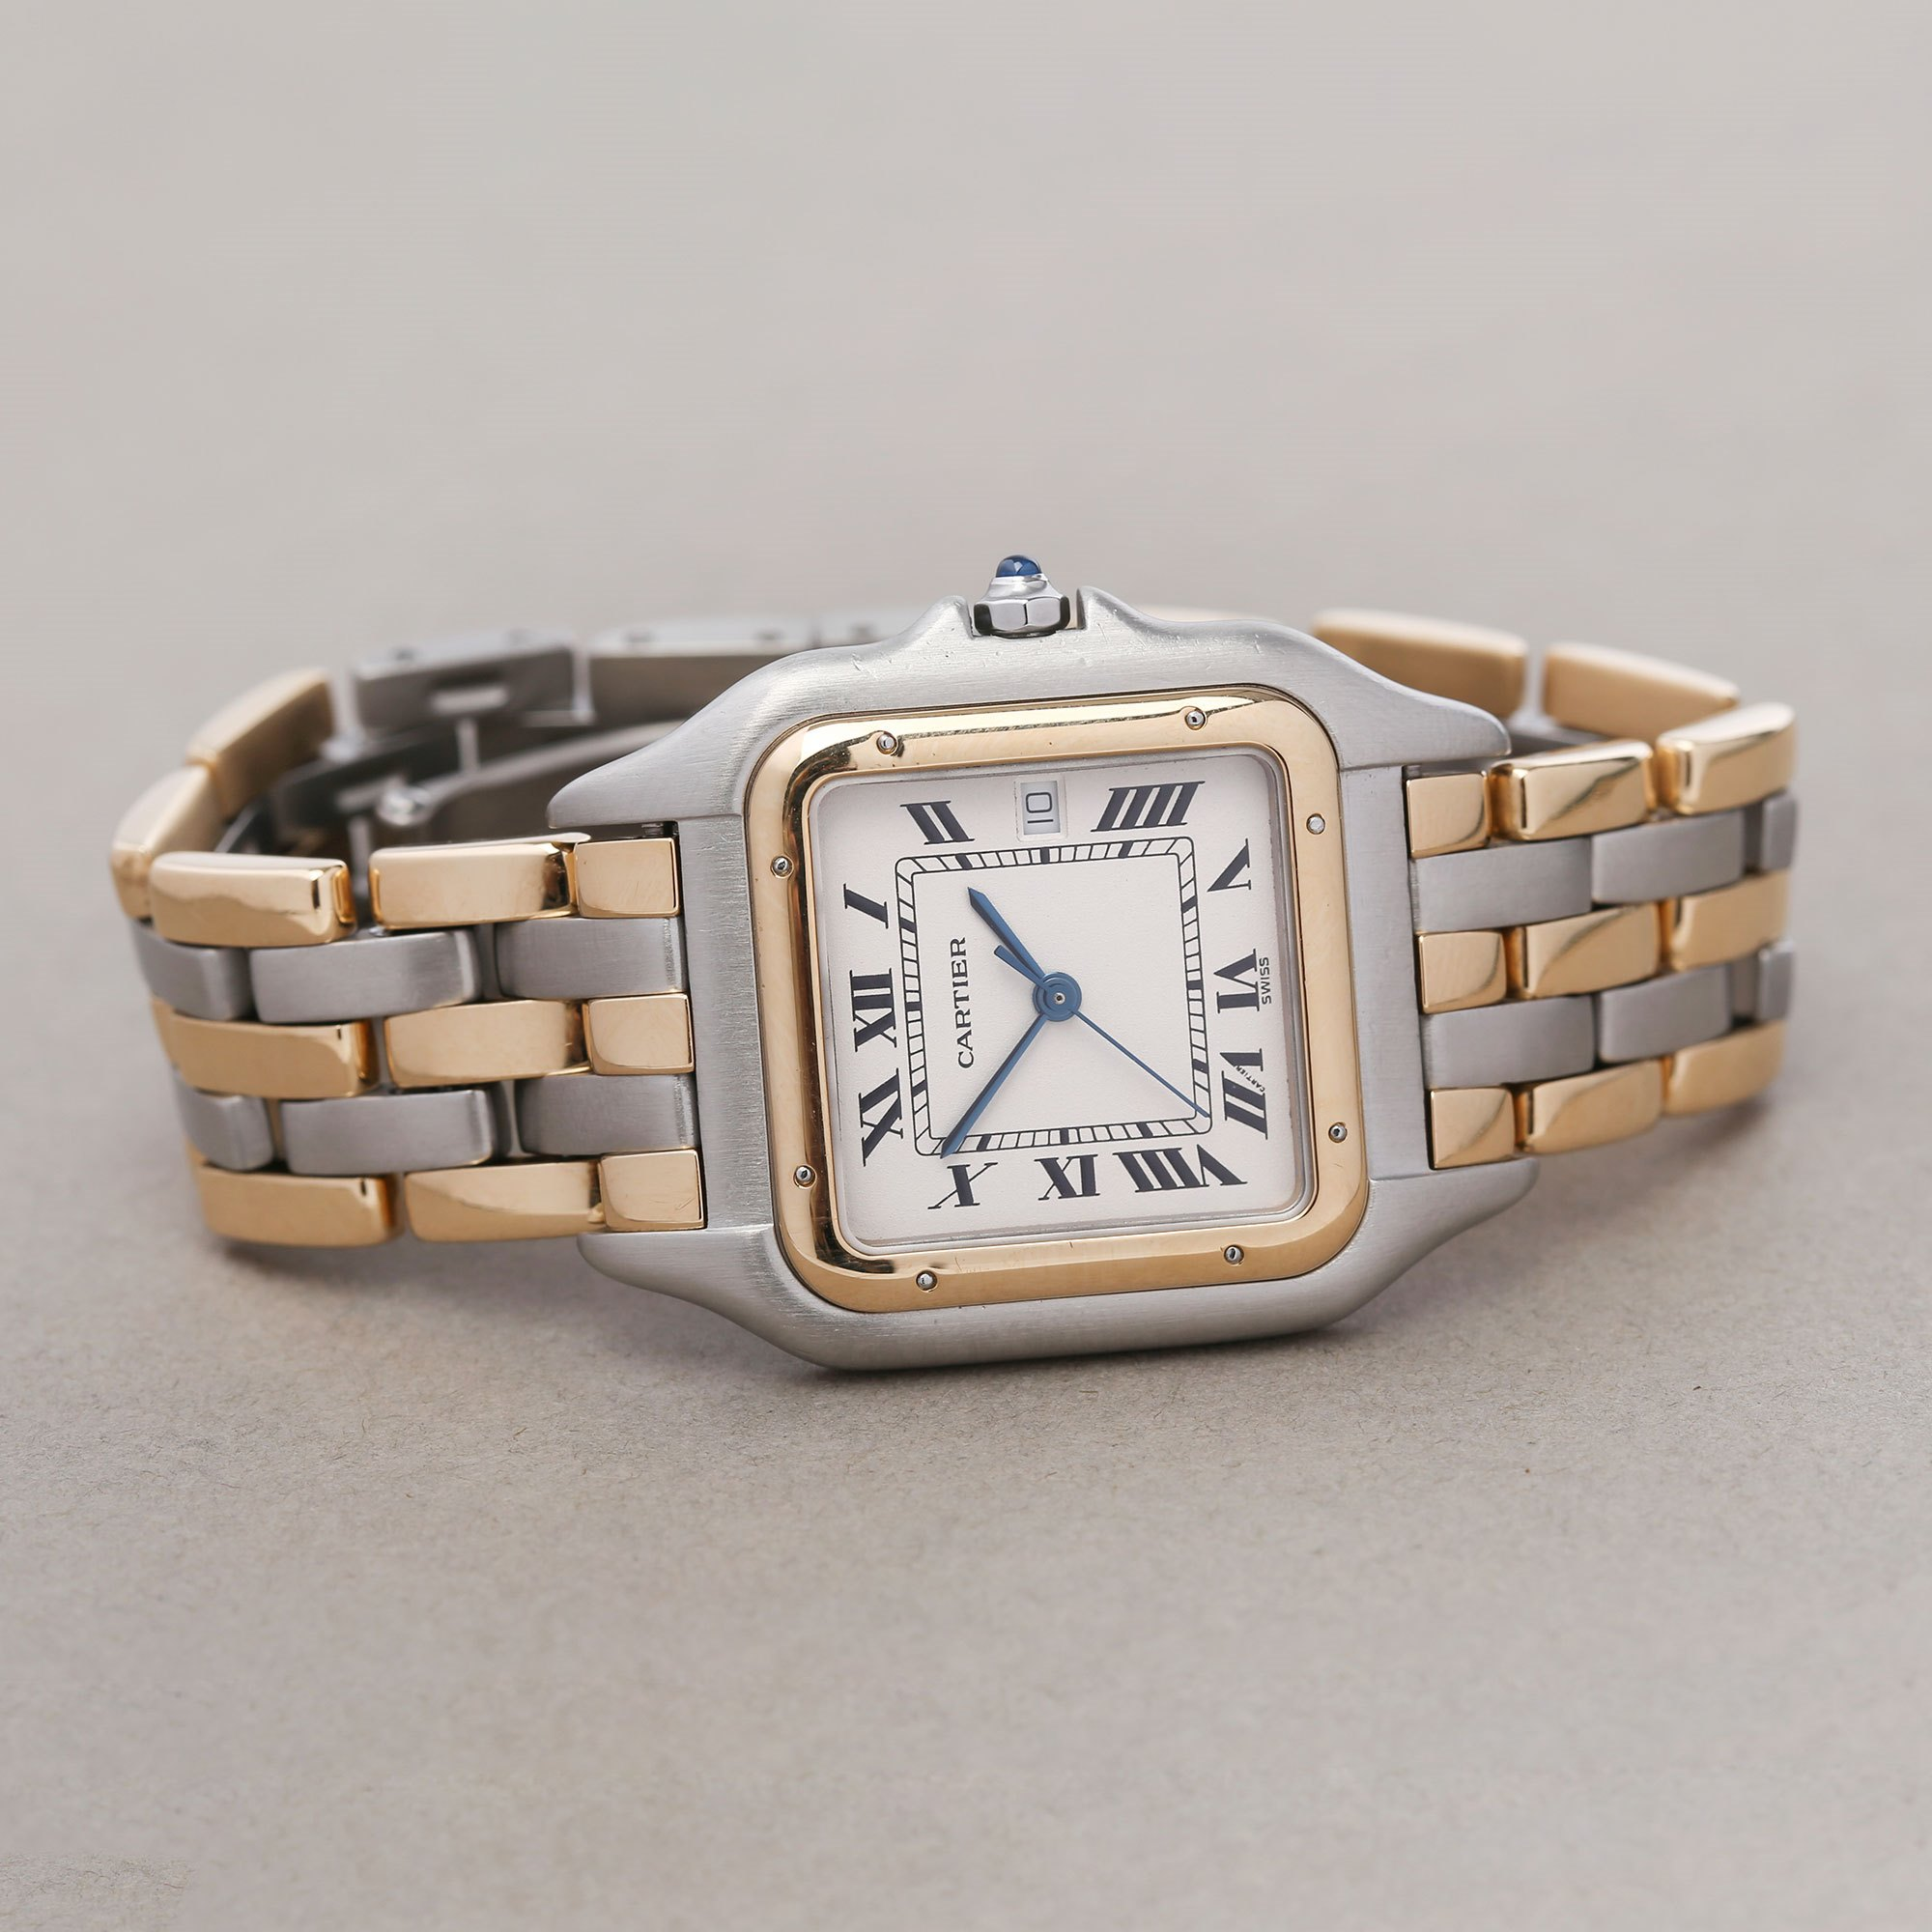 Cartier Panthère 3 Row 18K Yellow Gold & Stainless Steel 187957